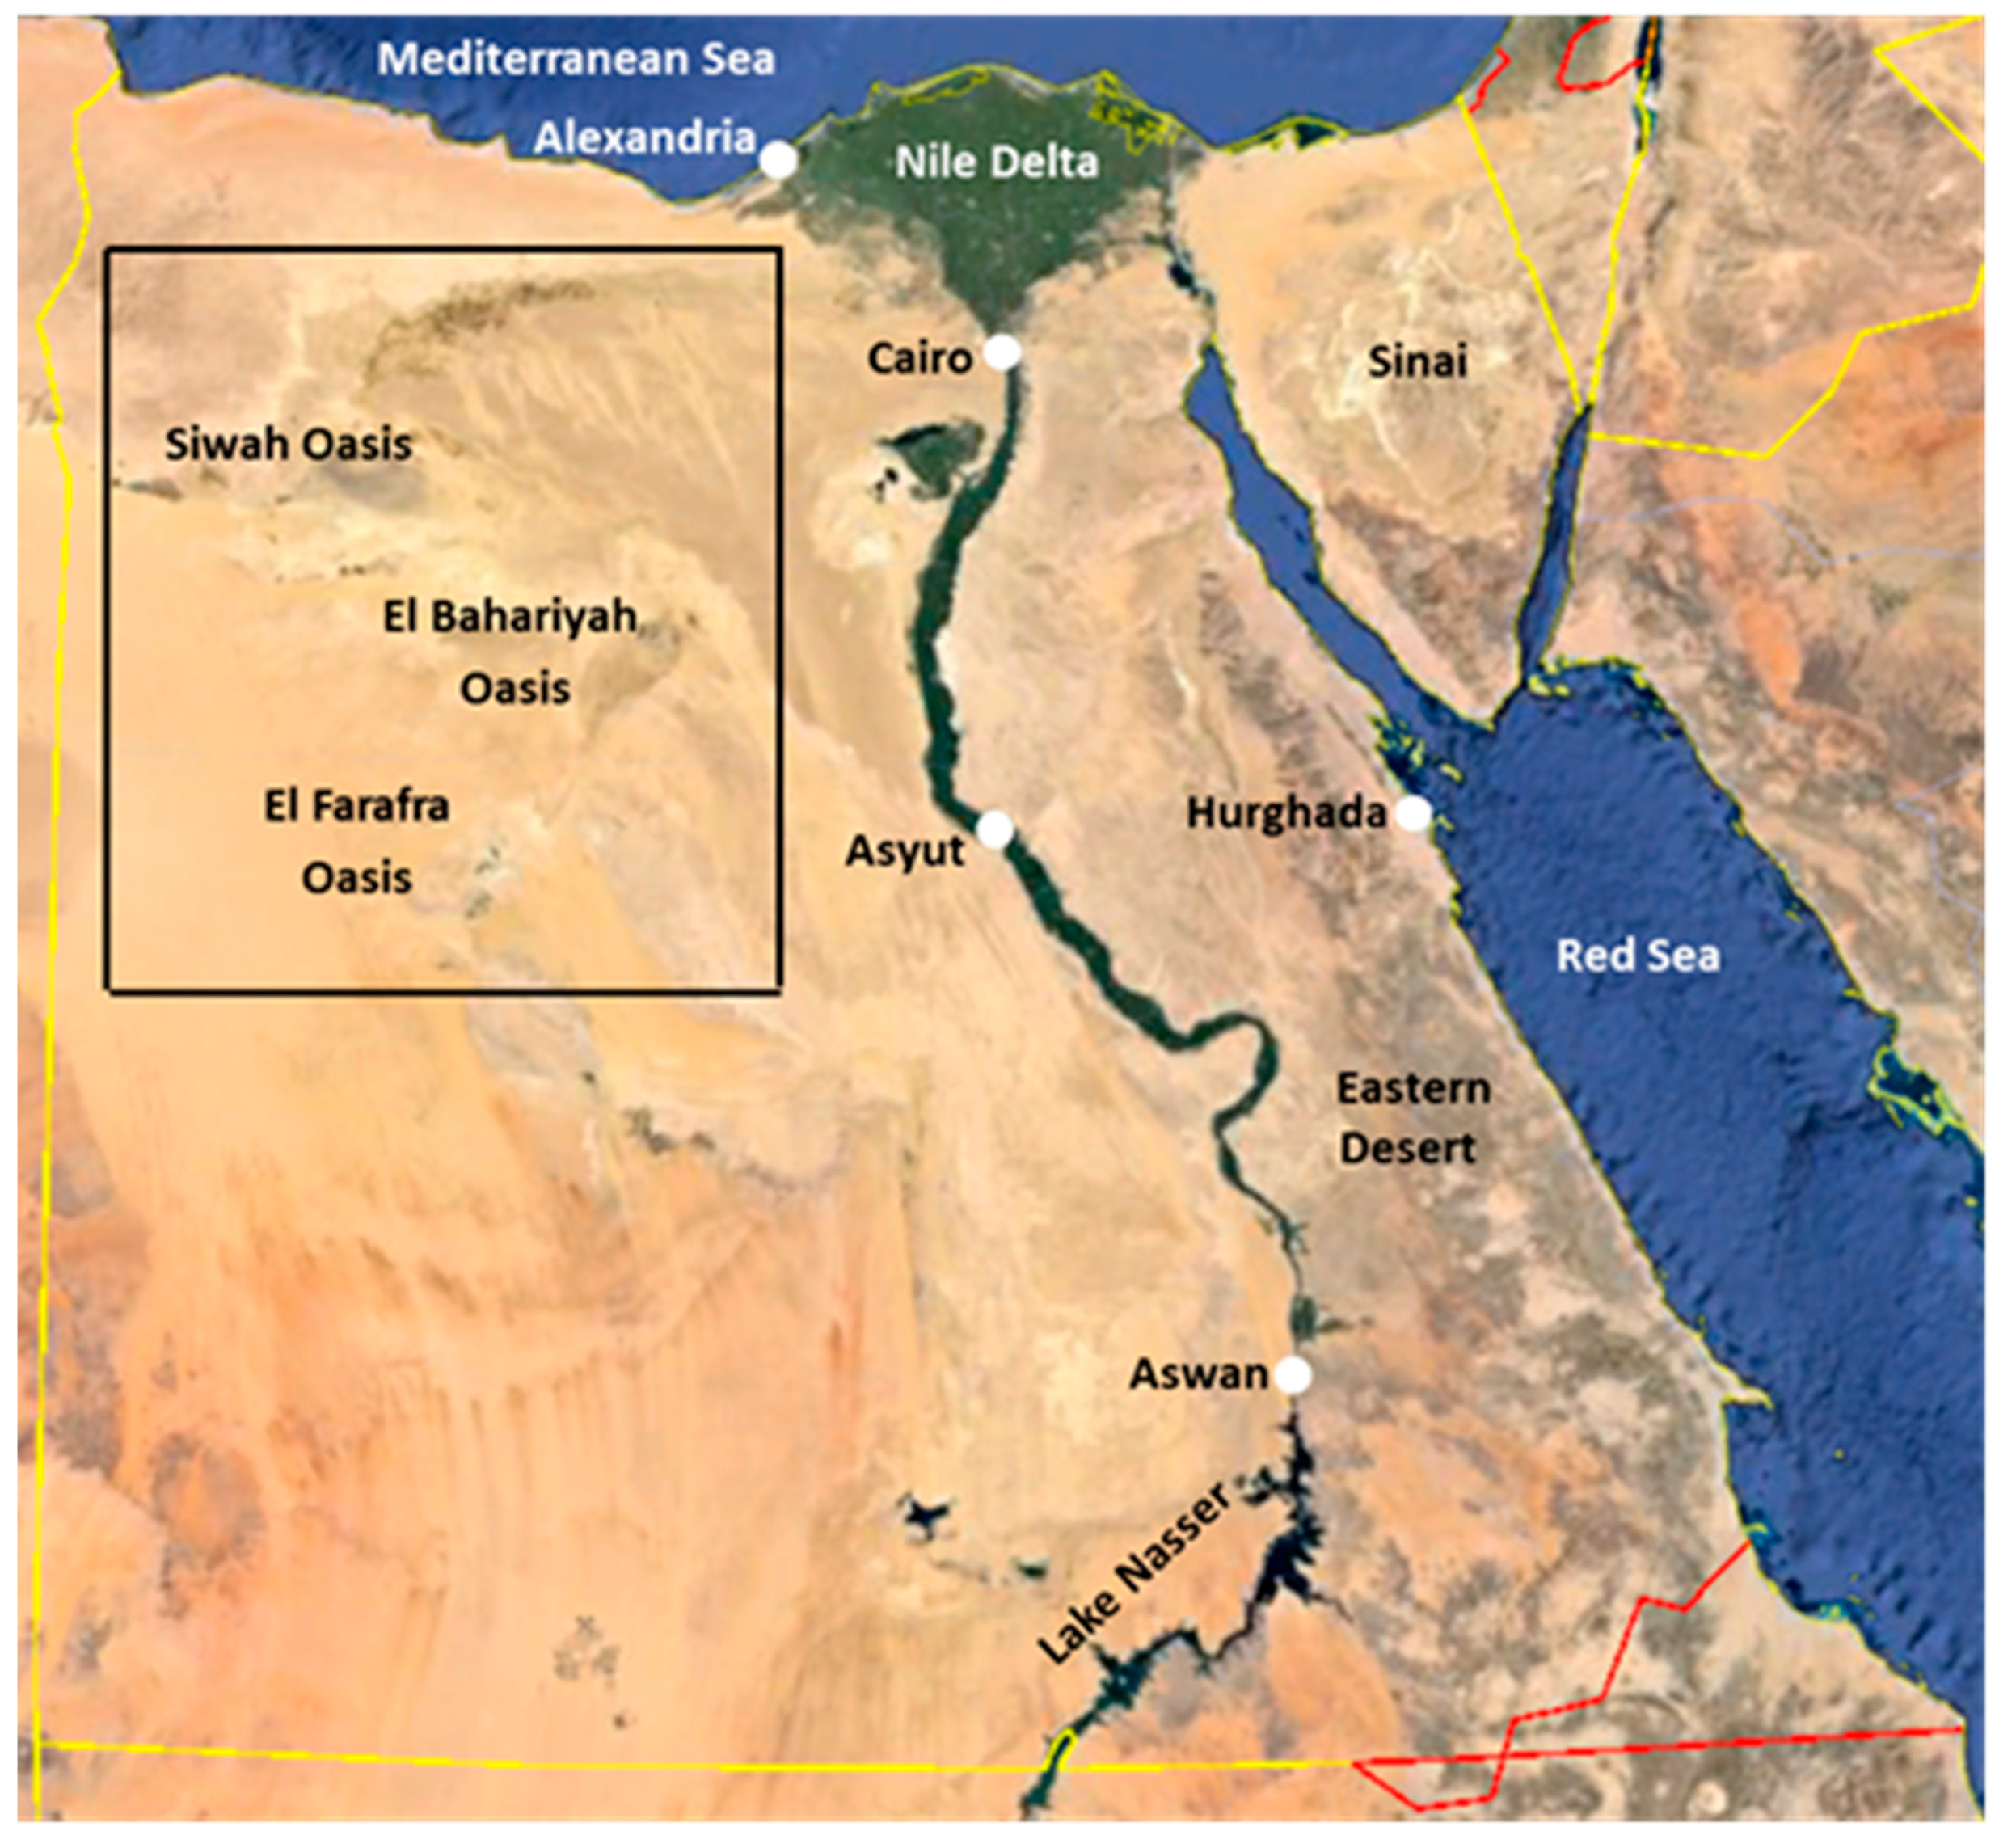 Remote Sensing Free FullText LongTerm HighResolution - Map of egypt high resolution